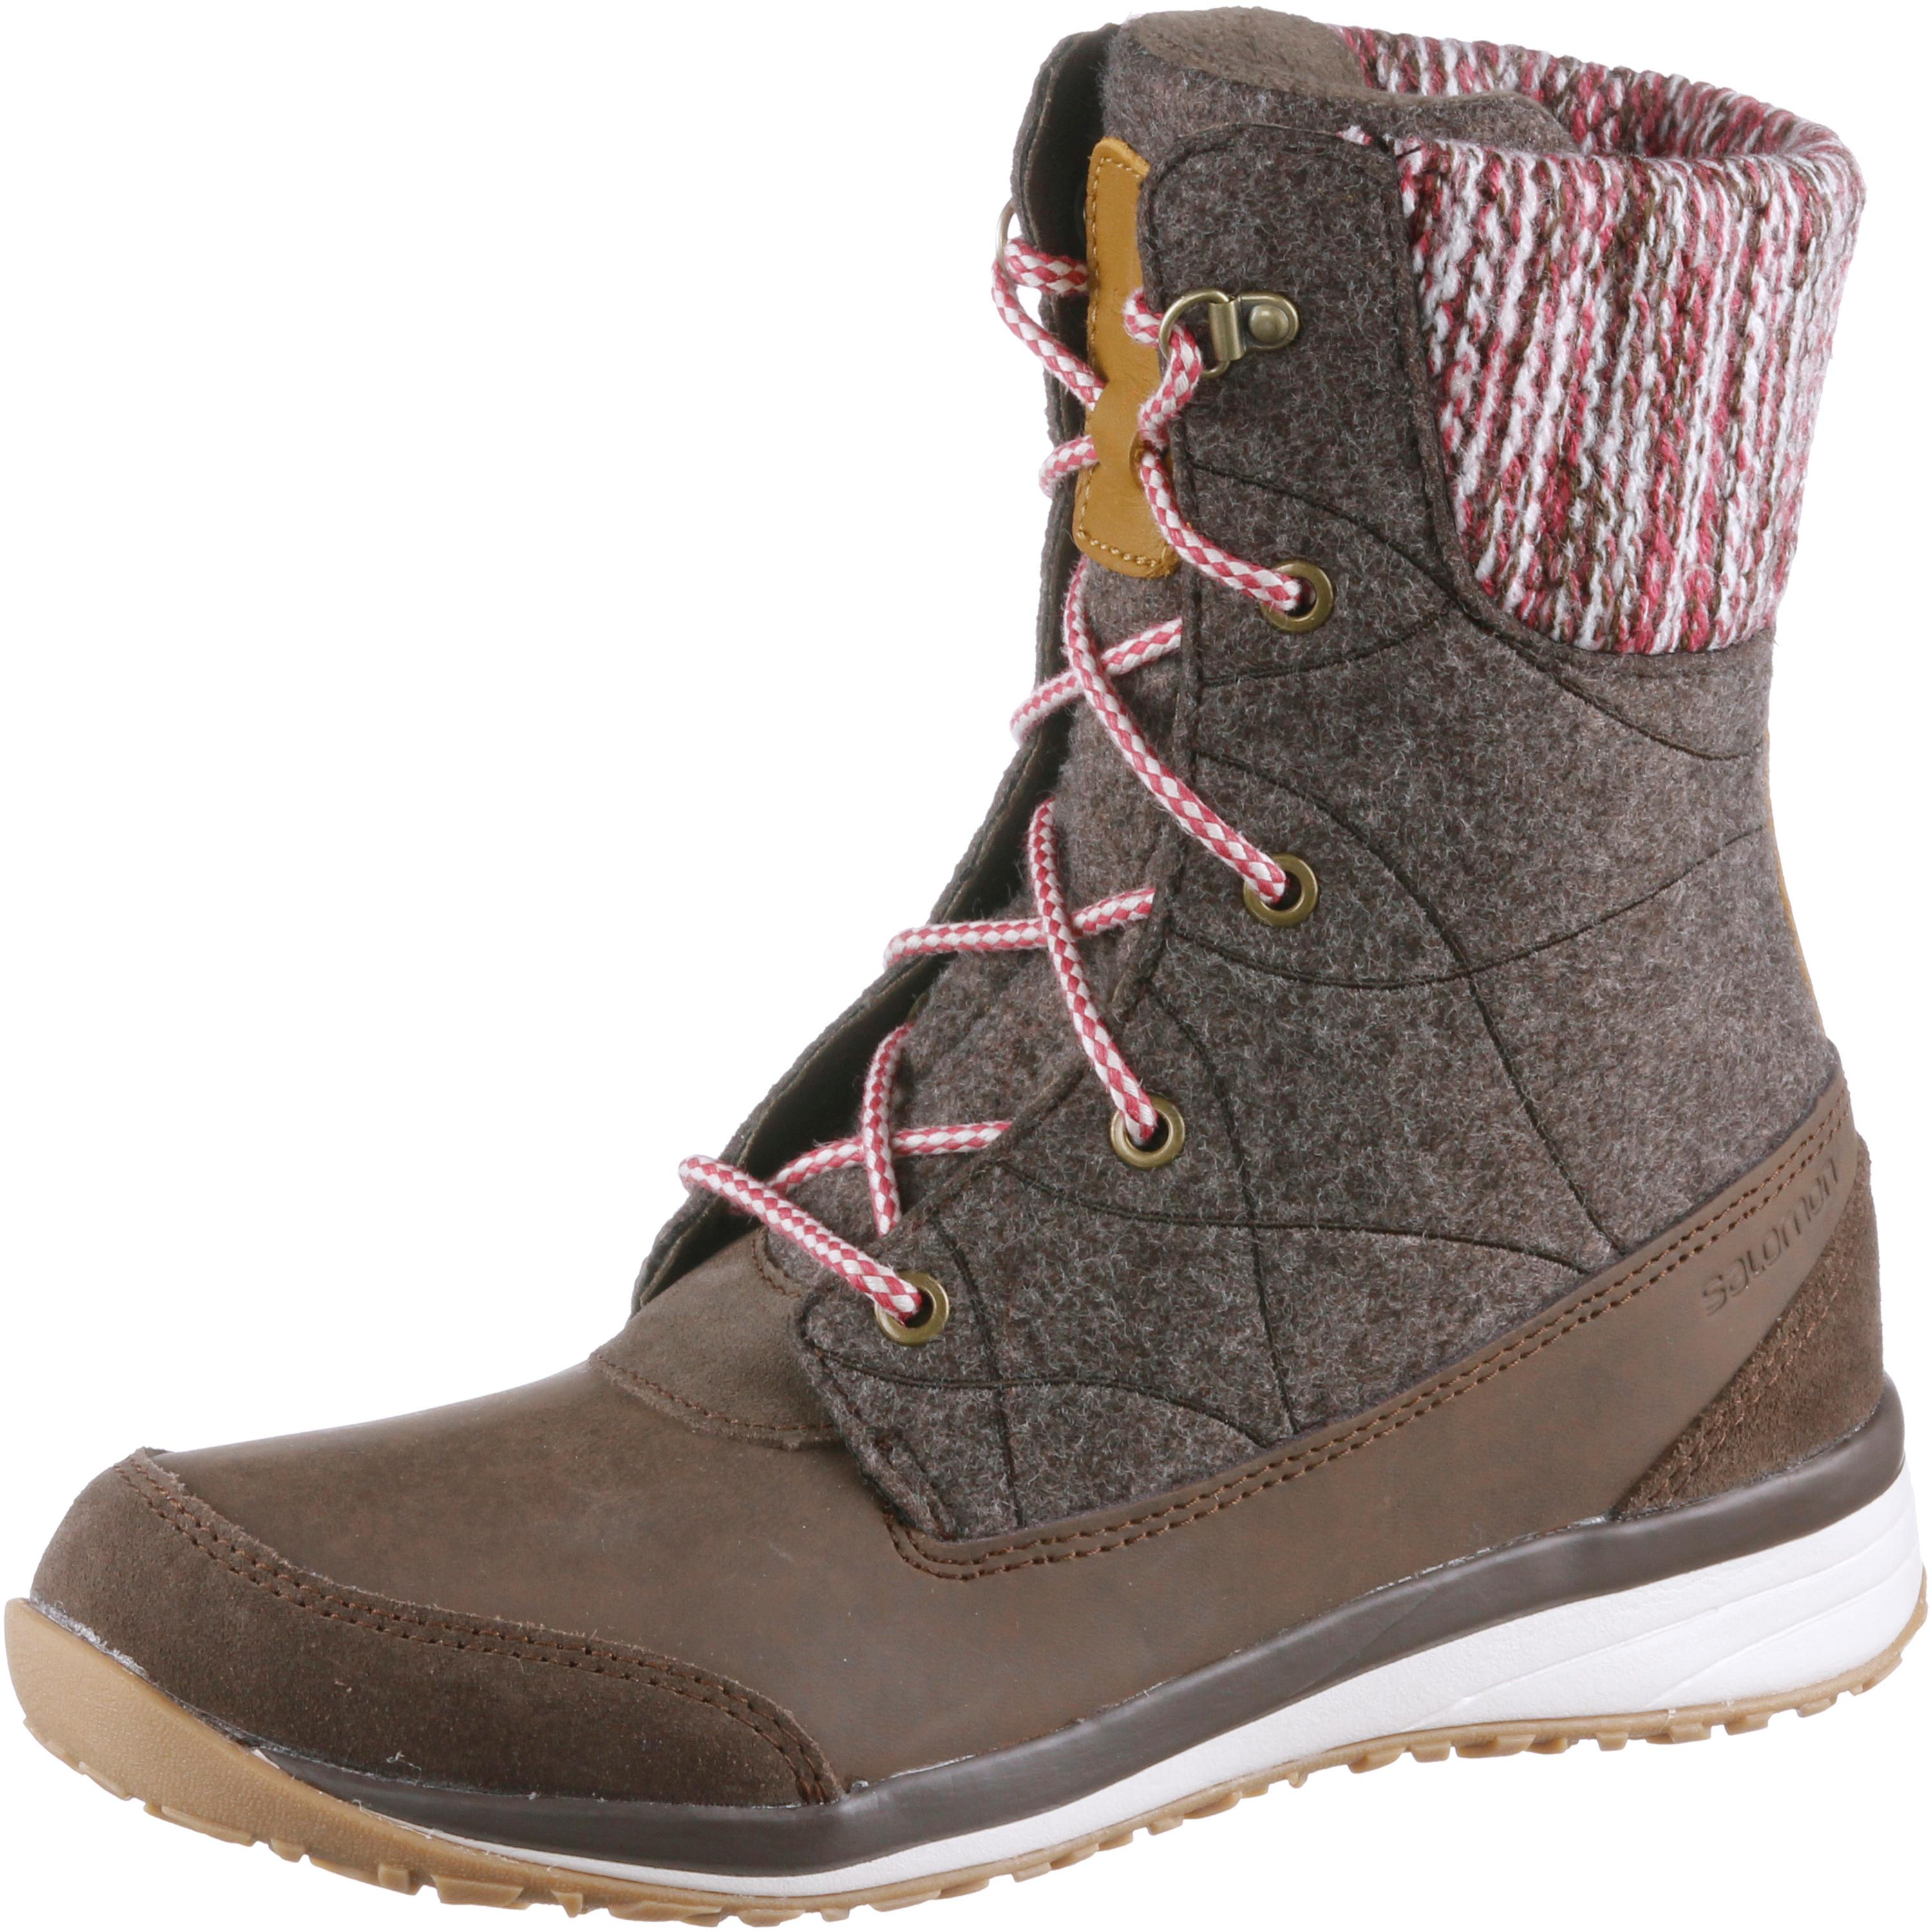 Salomon Hime Mid Winterschuhe Damen